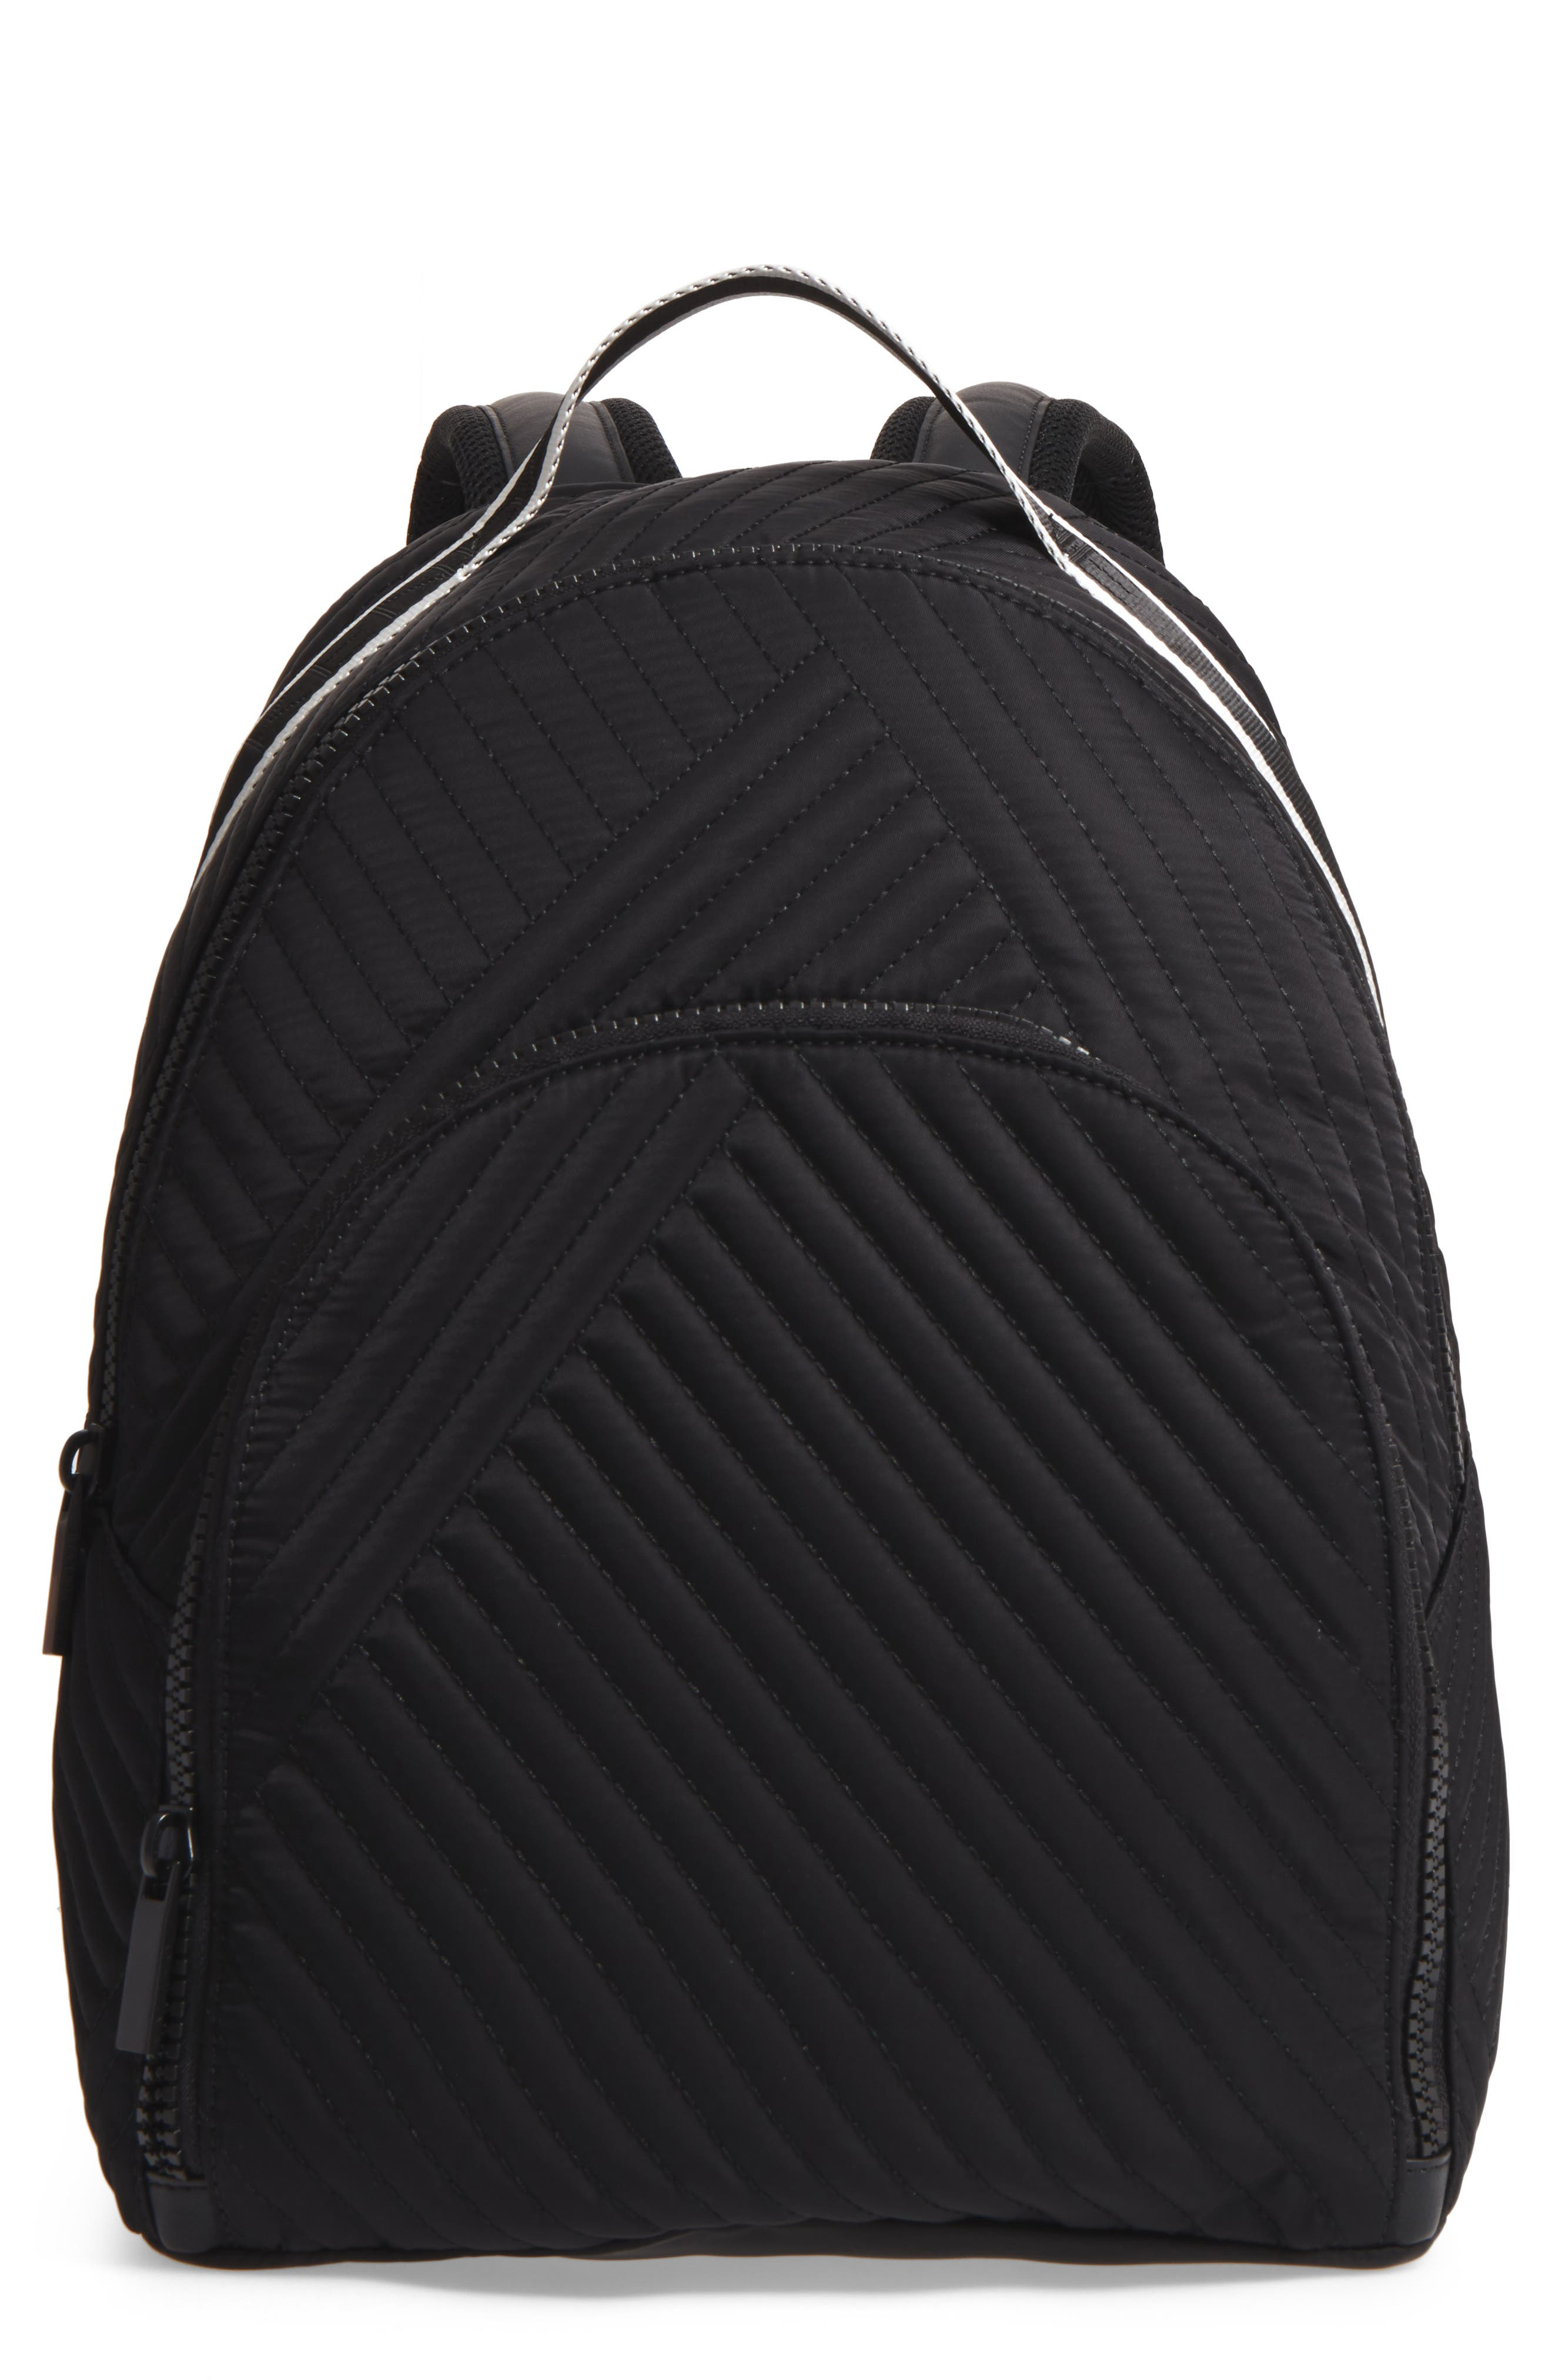 KENDALL + KYLIE Jo Quilted Nylon Backpack